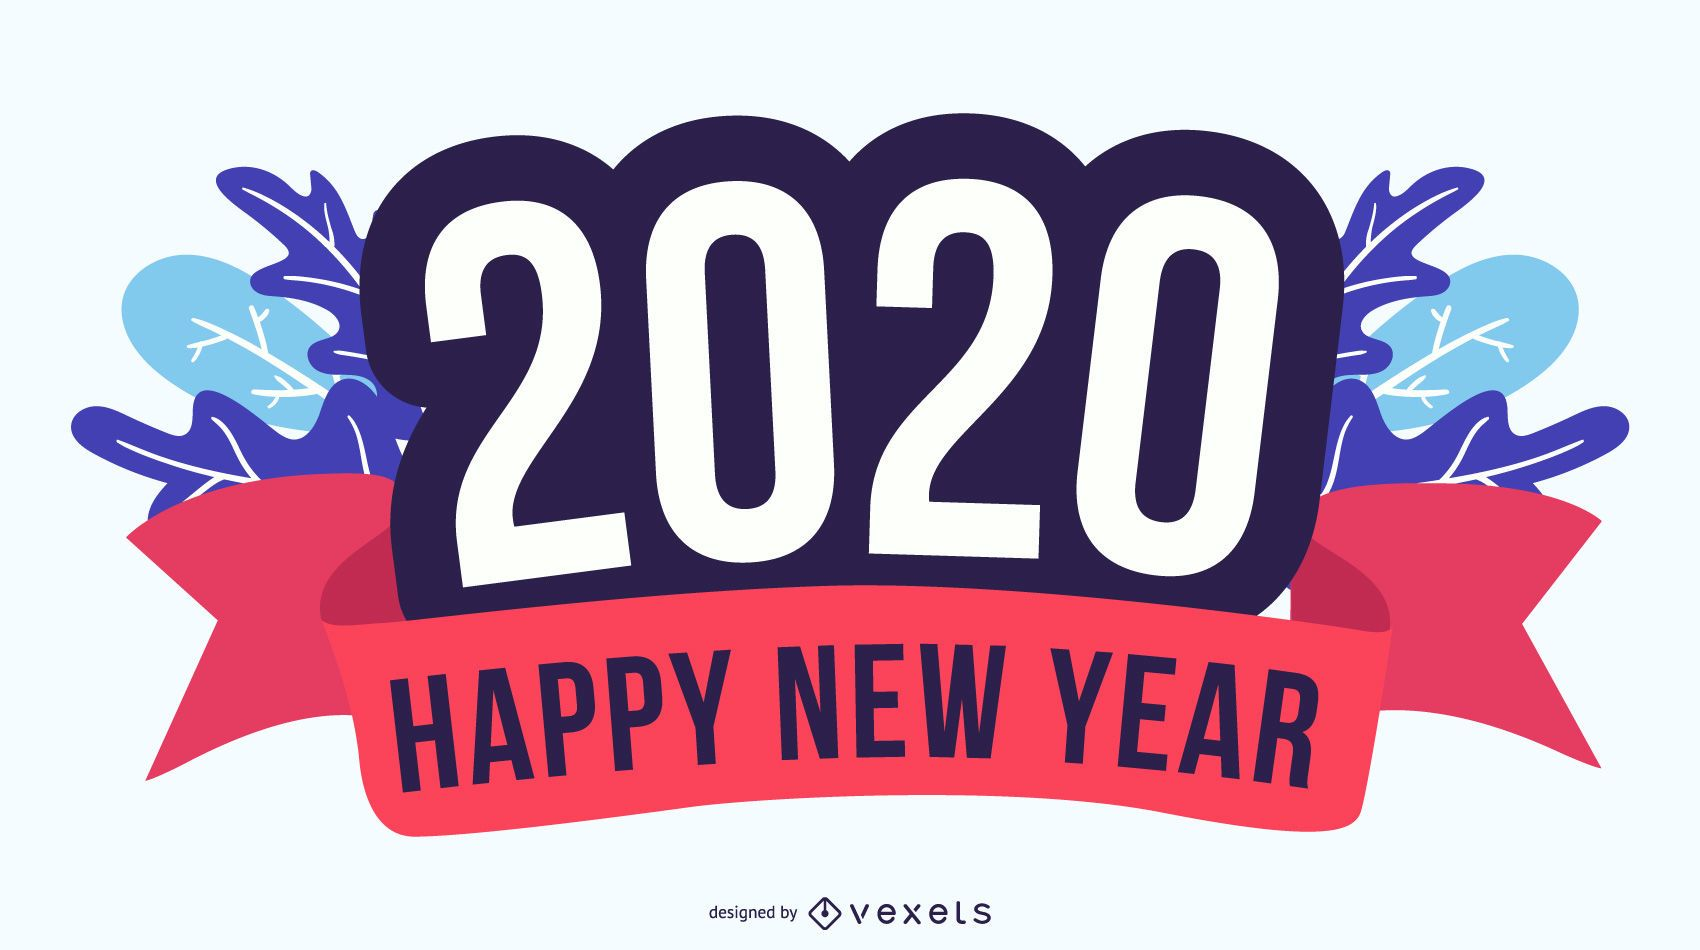 Happy New Year 2020 PNG Transparent Images   PNG All